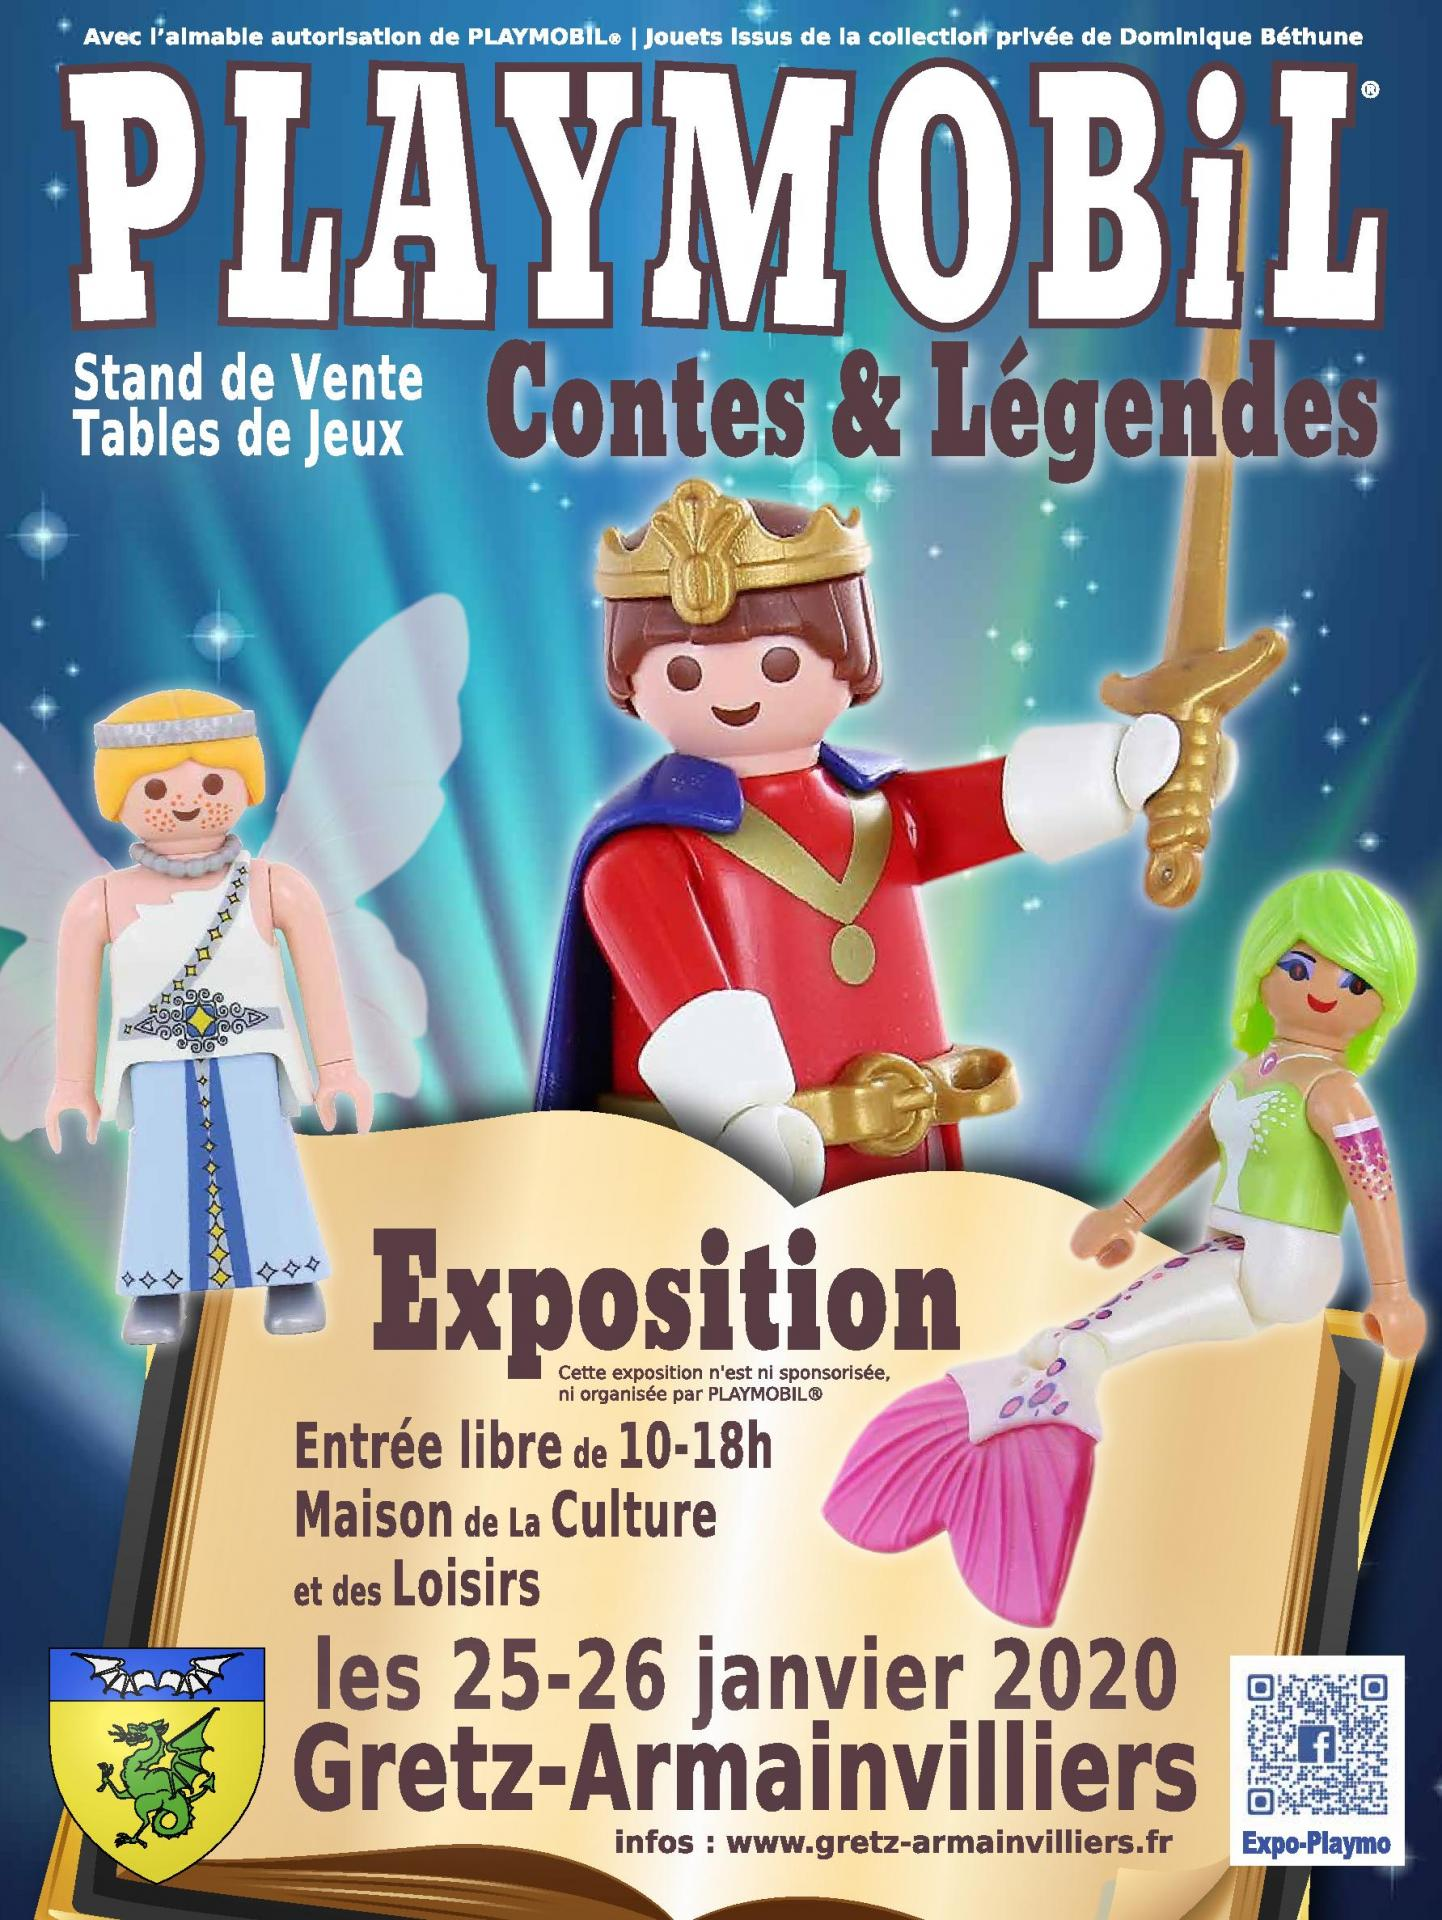 Affiche exposition playmobil gretz armainvilliers 2020 dominique bethune page 001